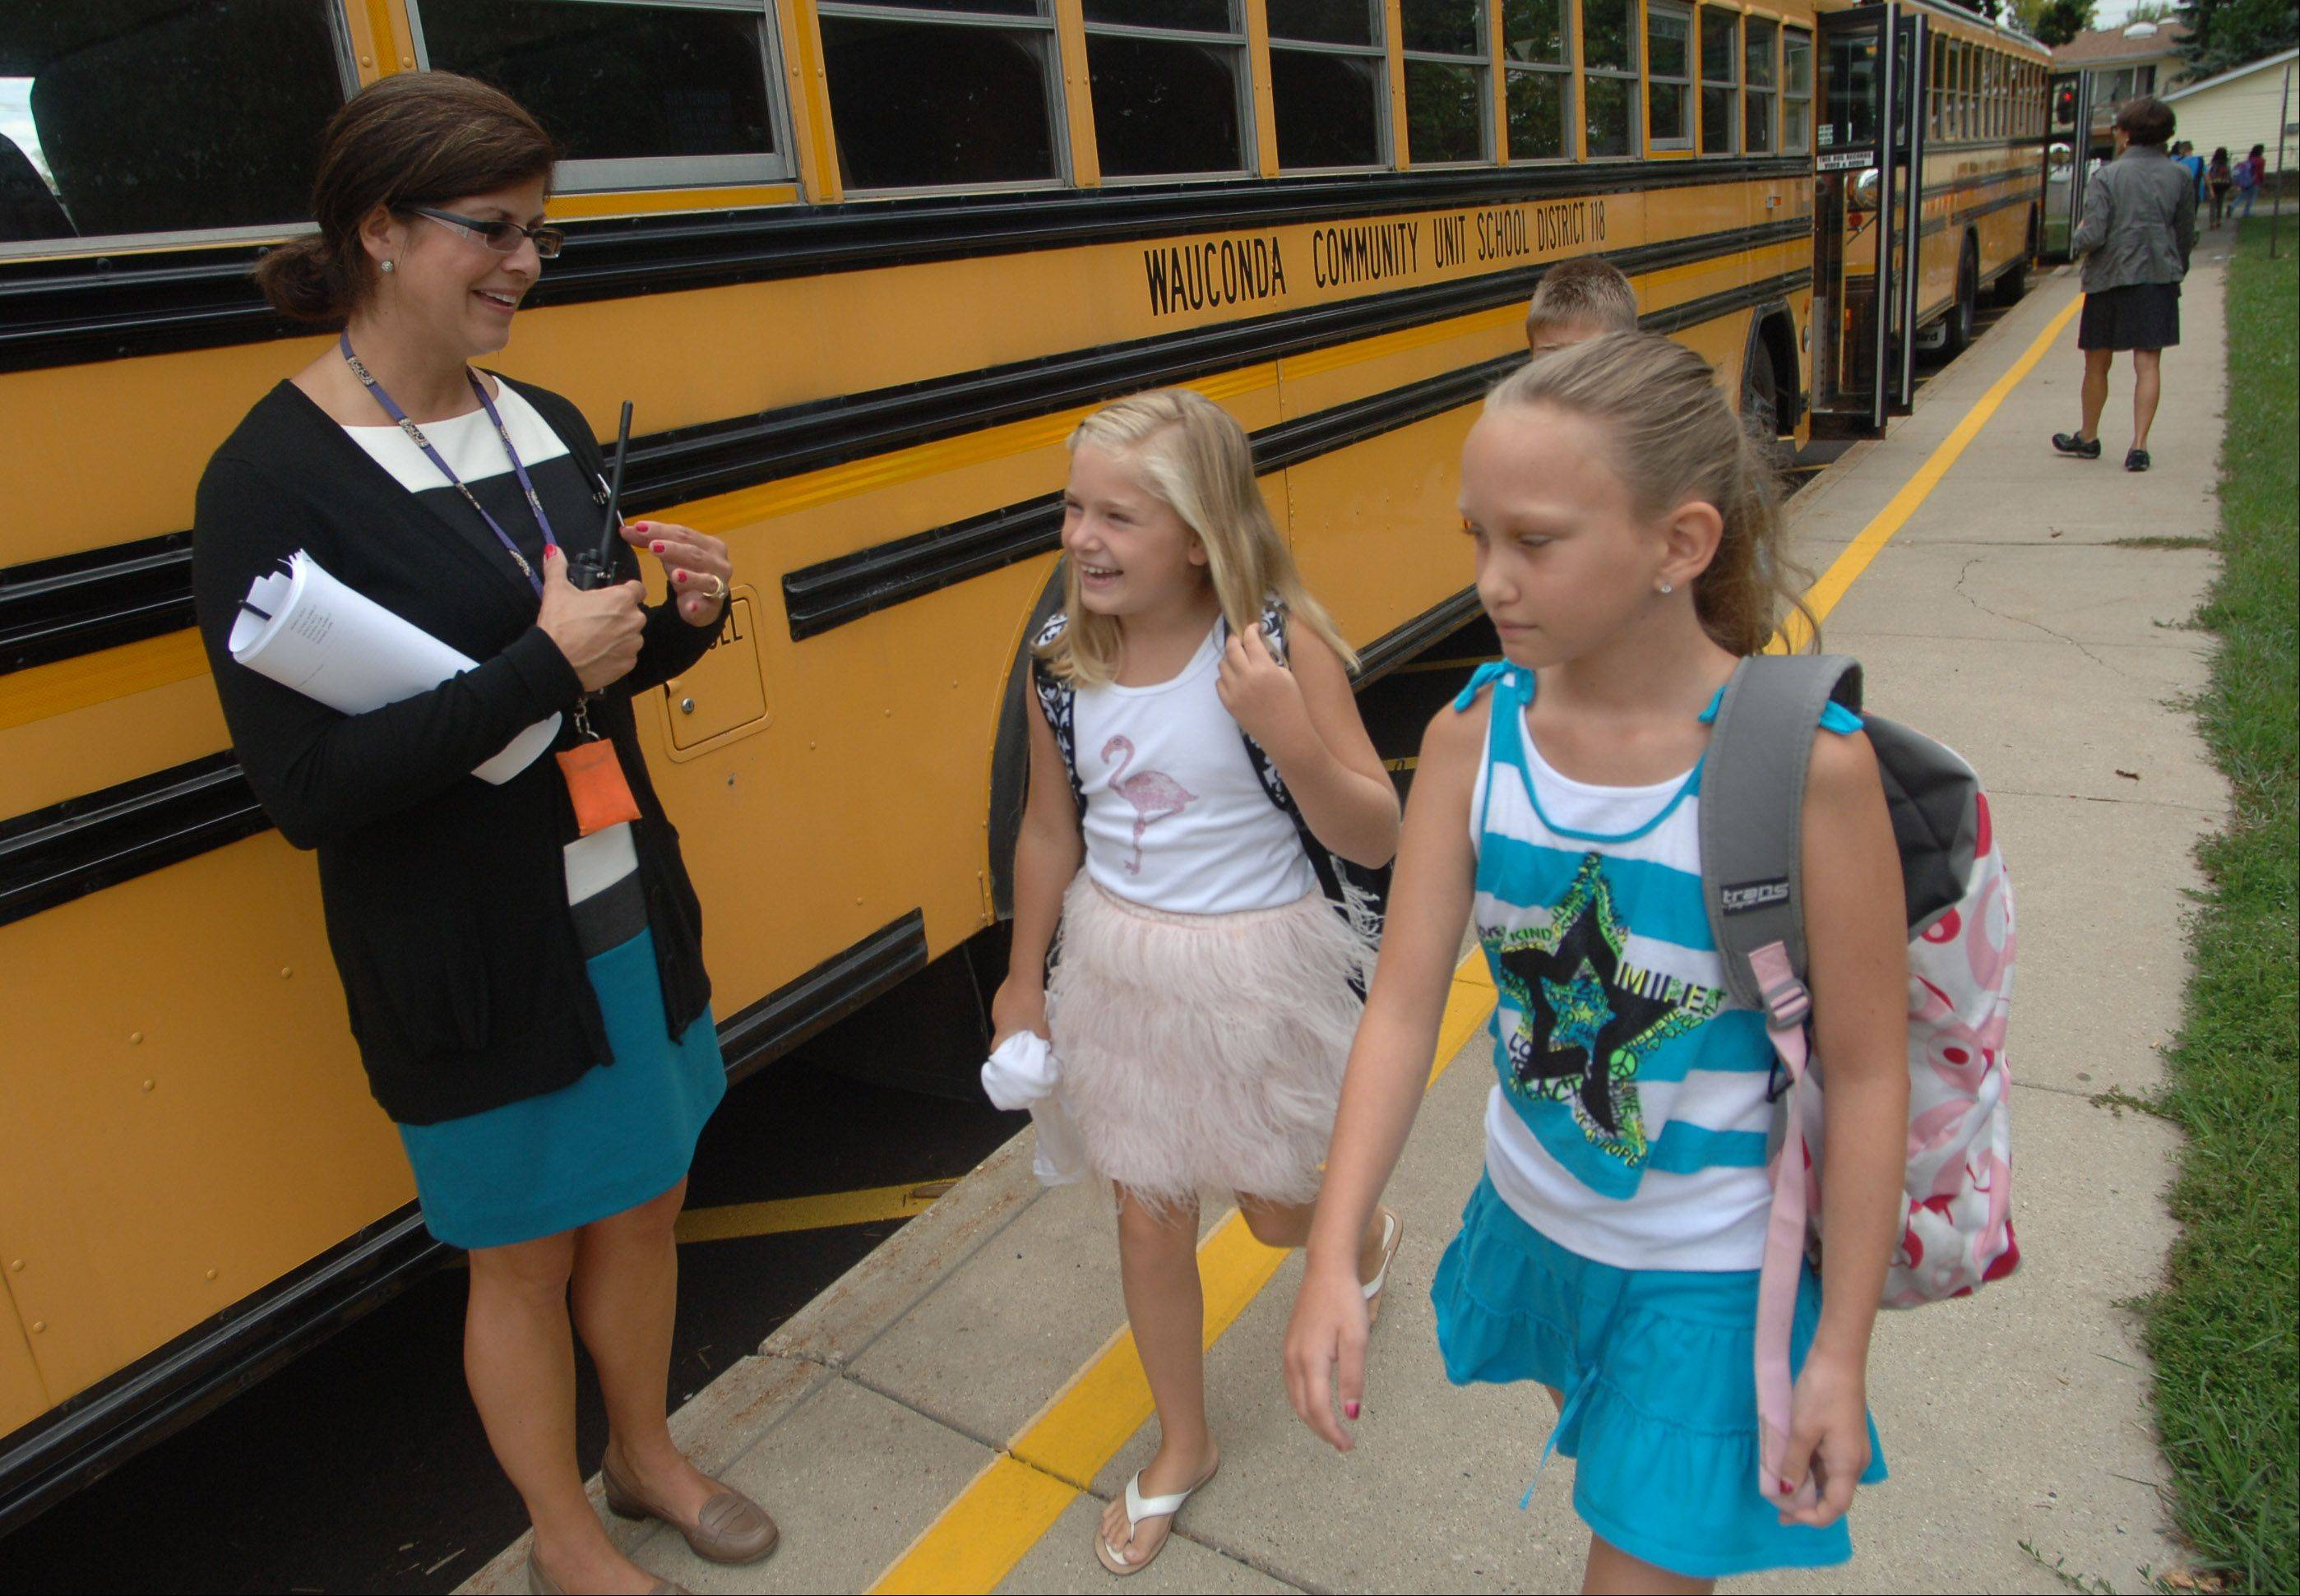 Robert Crown School principal Karrie Diol, left, greets students as they get off the bus in Wauconda Wednesday morning.